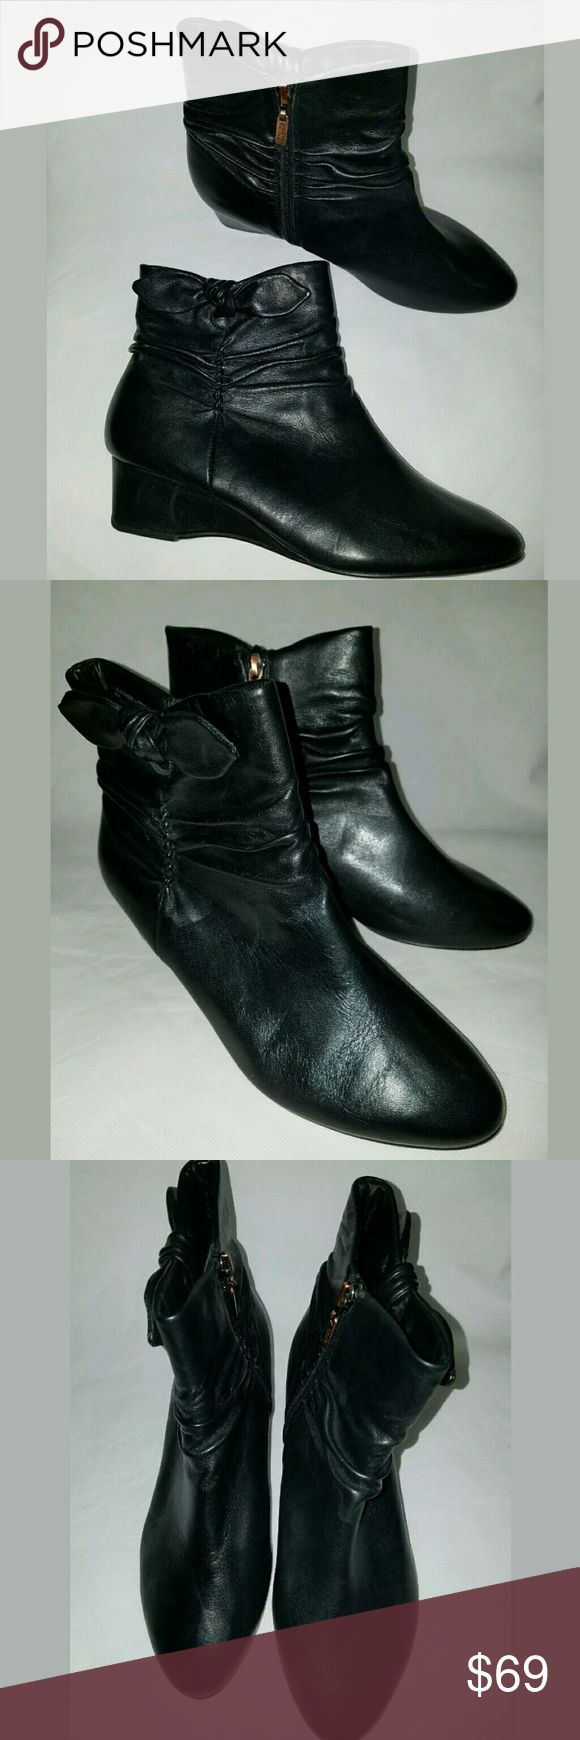 Antia Ankle Boots Size 8W Soft Leather Pointed Toe Antia Ankle Boots Women's Size 8 Wide Soft Leather Pointed Toe Bow Side Zip Black ---Excellent used condition.  Leather boots. Side zip.  1.5 inch wedge heels.    LB Antia Shoes Ankle Boots & Booties